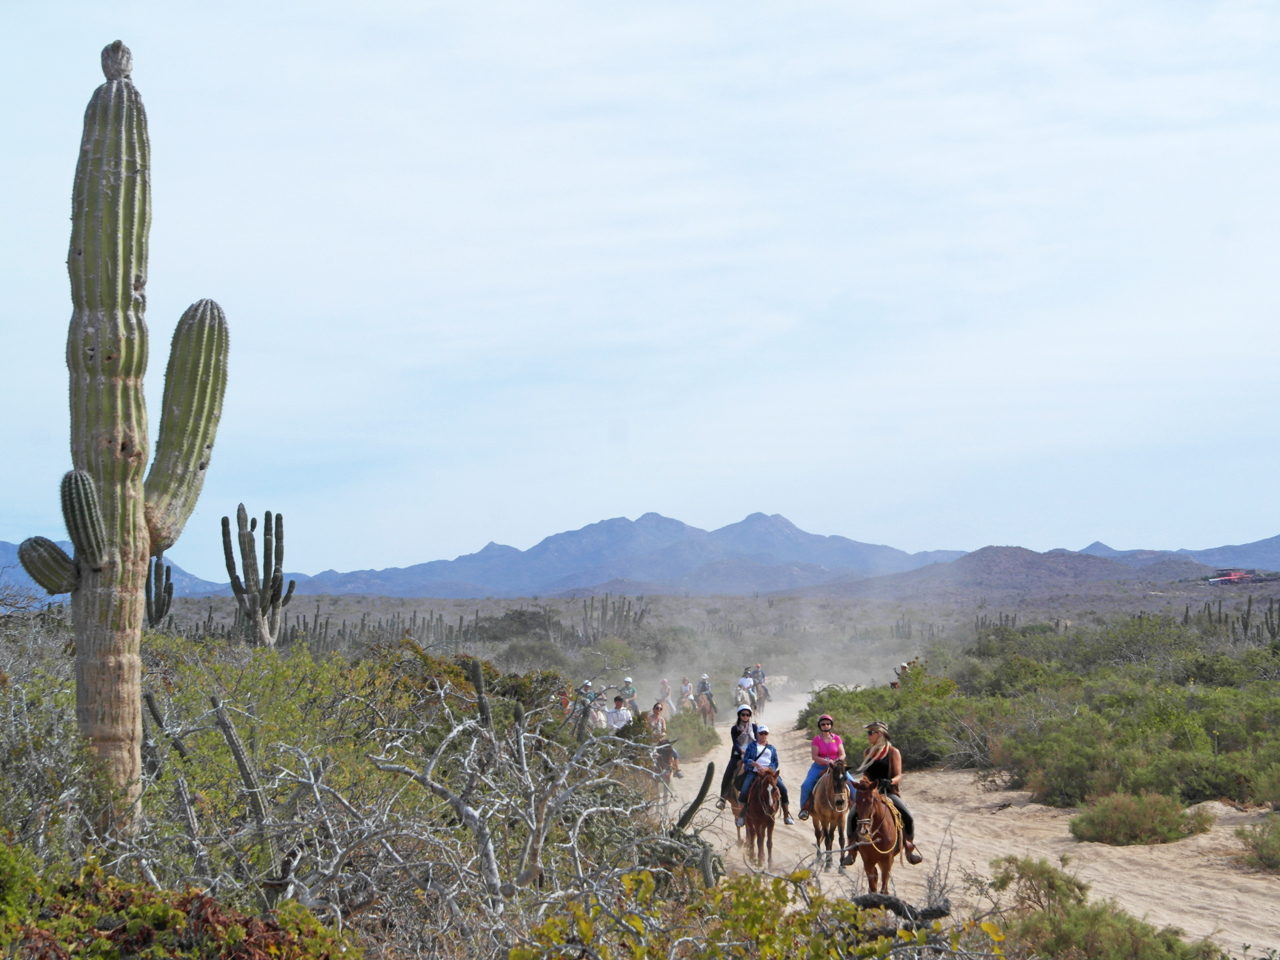 Pacific Horseback Riding Tour   Horseback riding on the beach, ocean cliffs, desert and canyon trails.